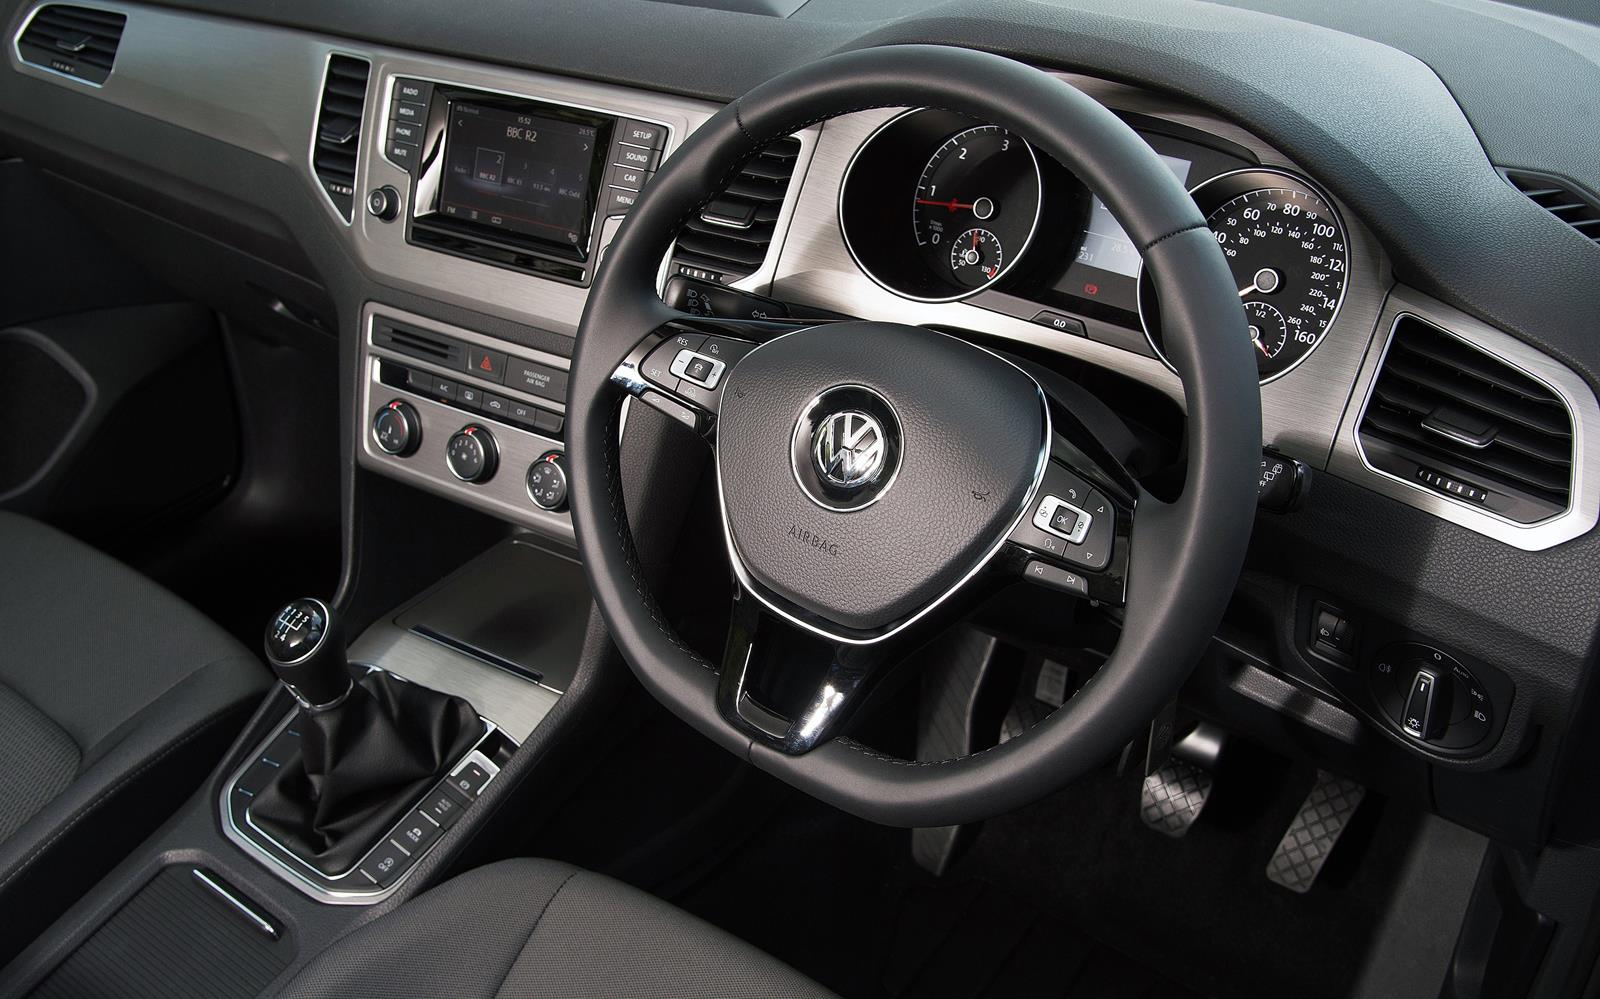 Volkswagen Golf SV 2015 Dashboard